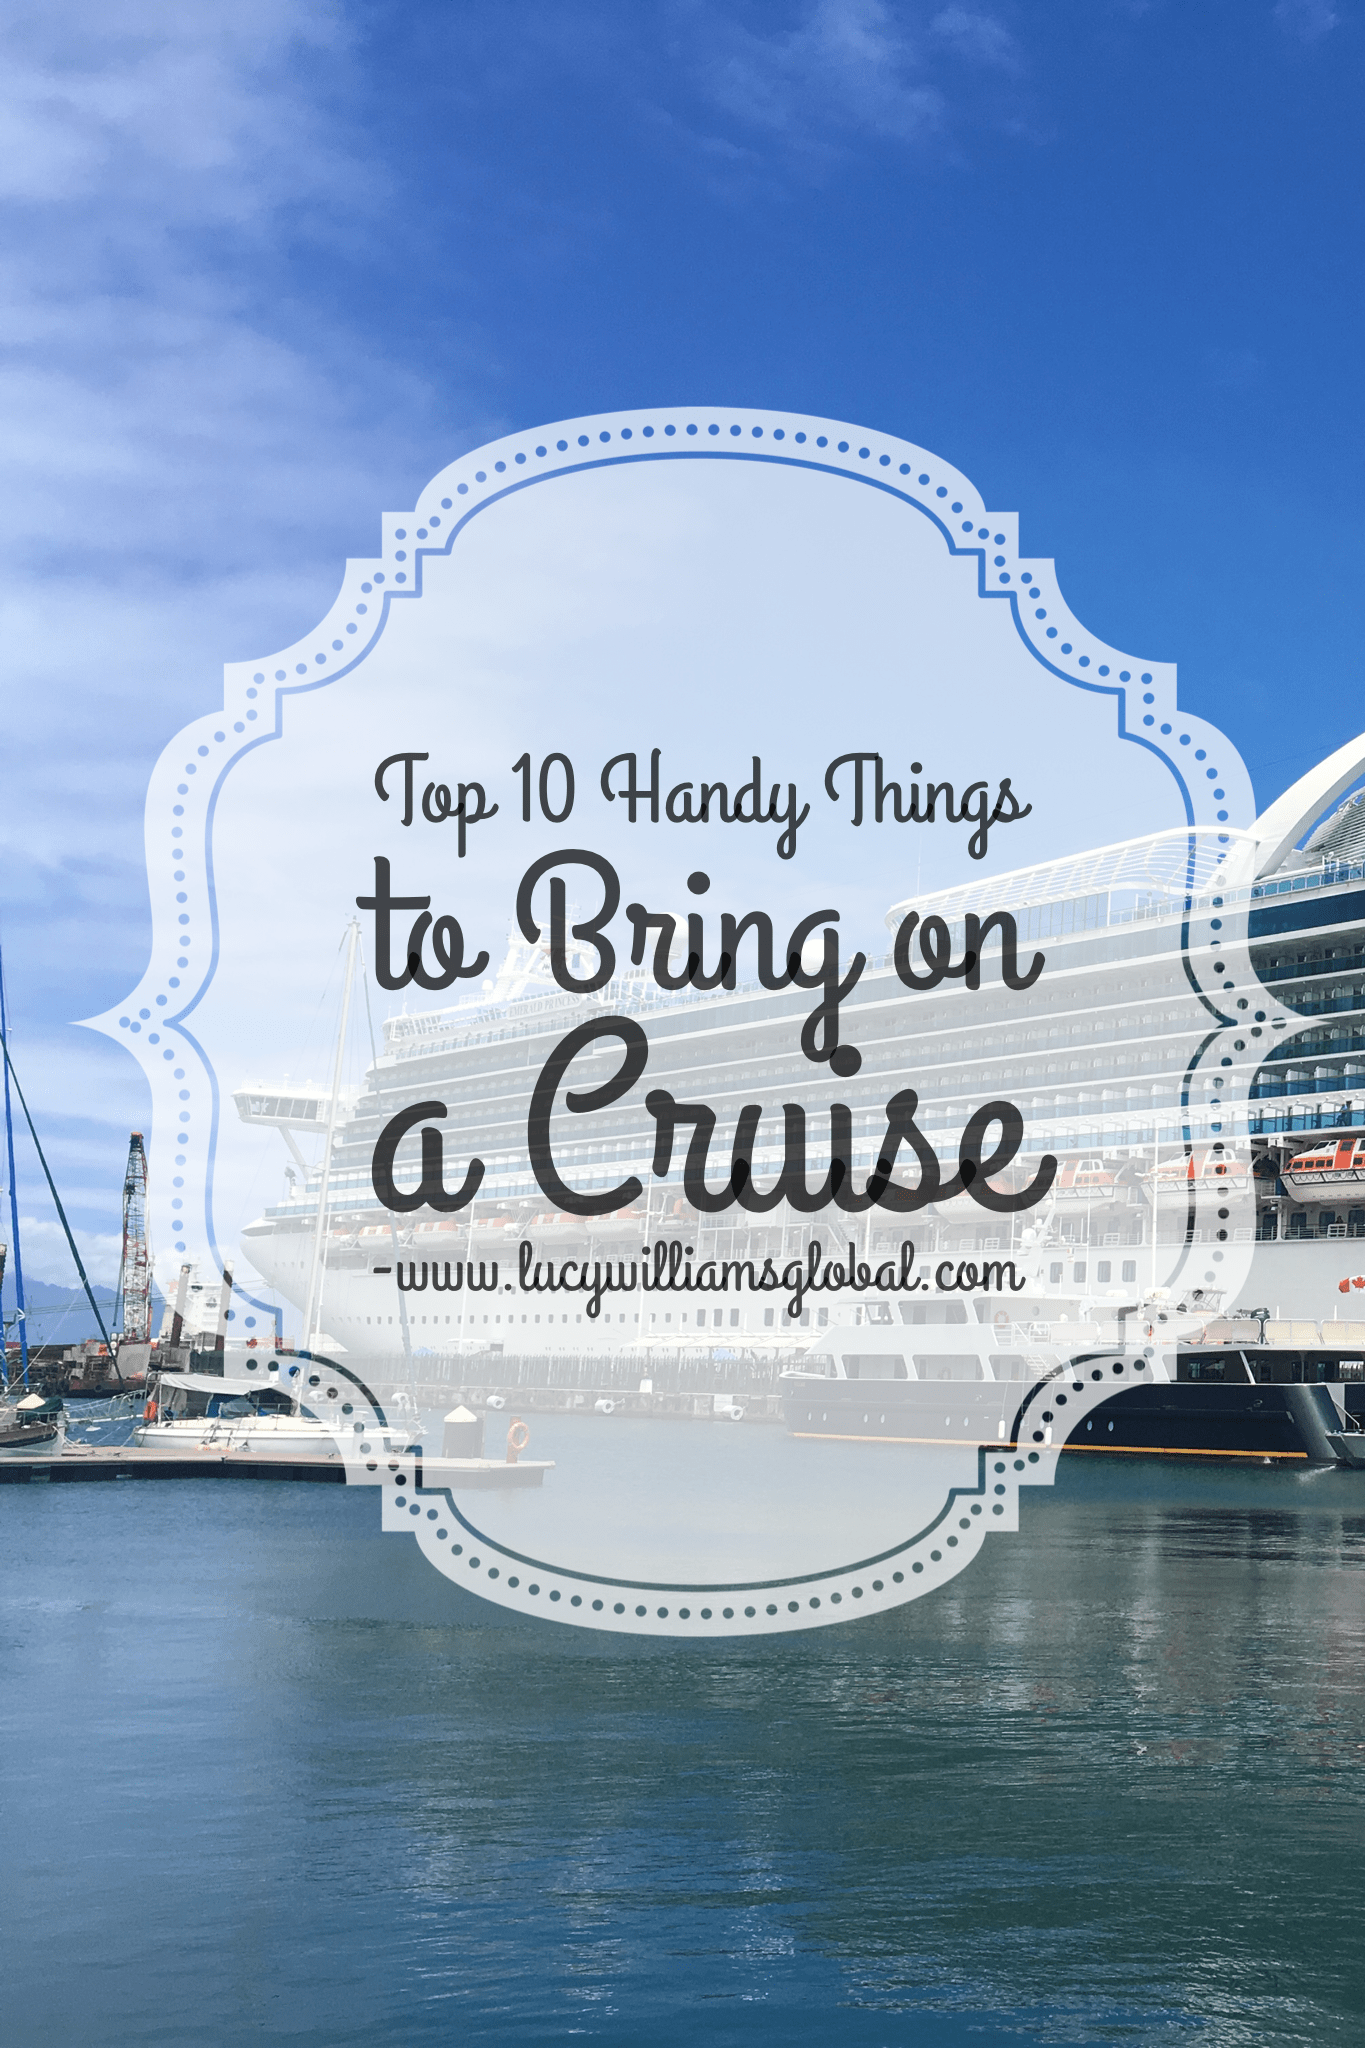 Top 10 Handy Things to Bring on a Cruise